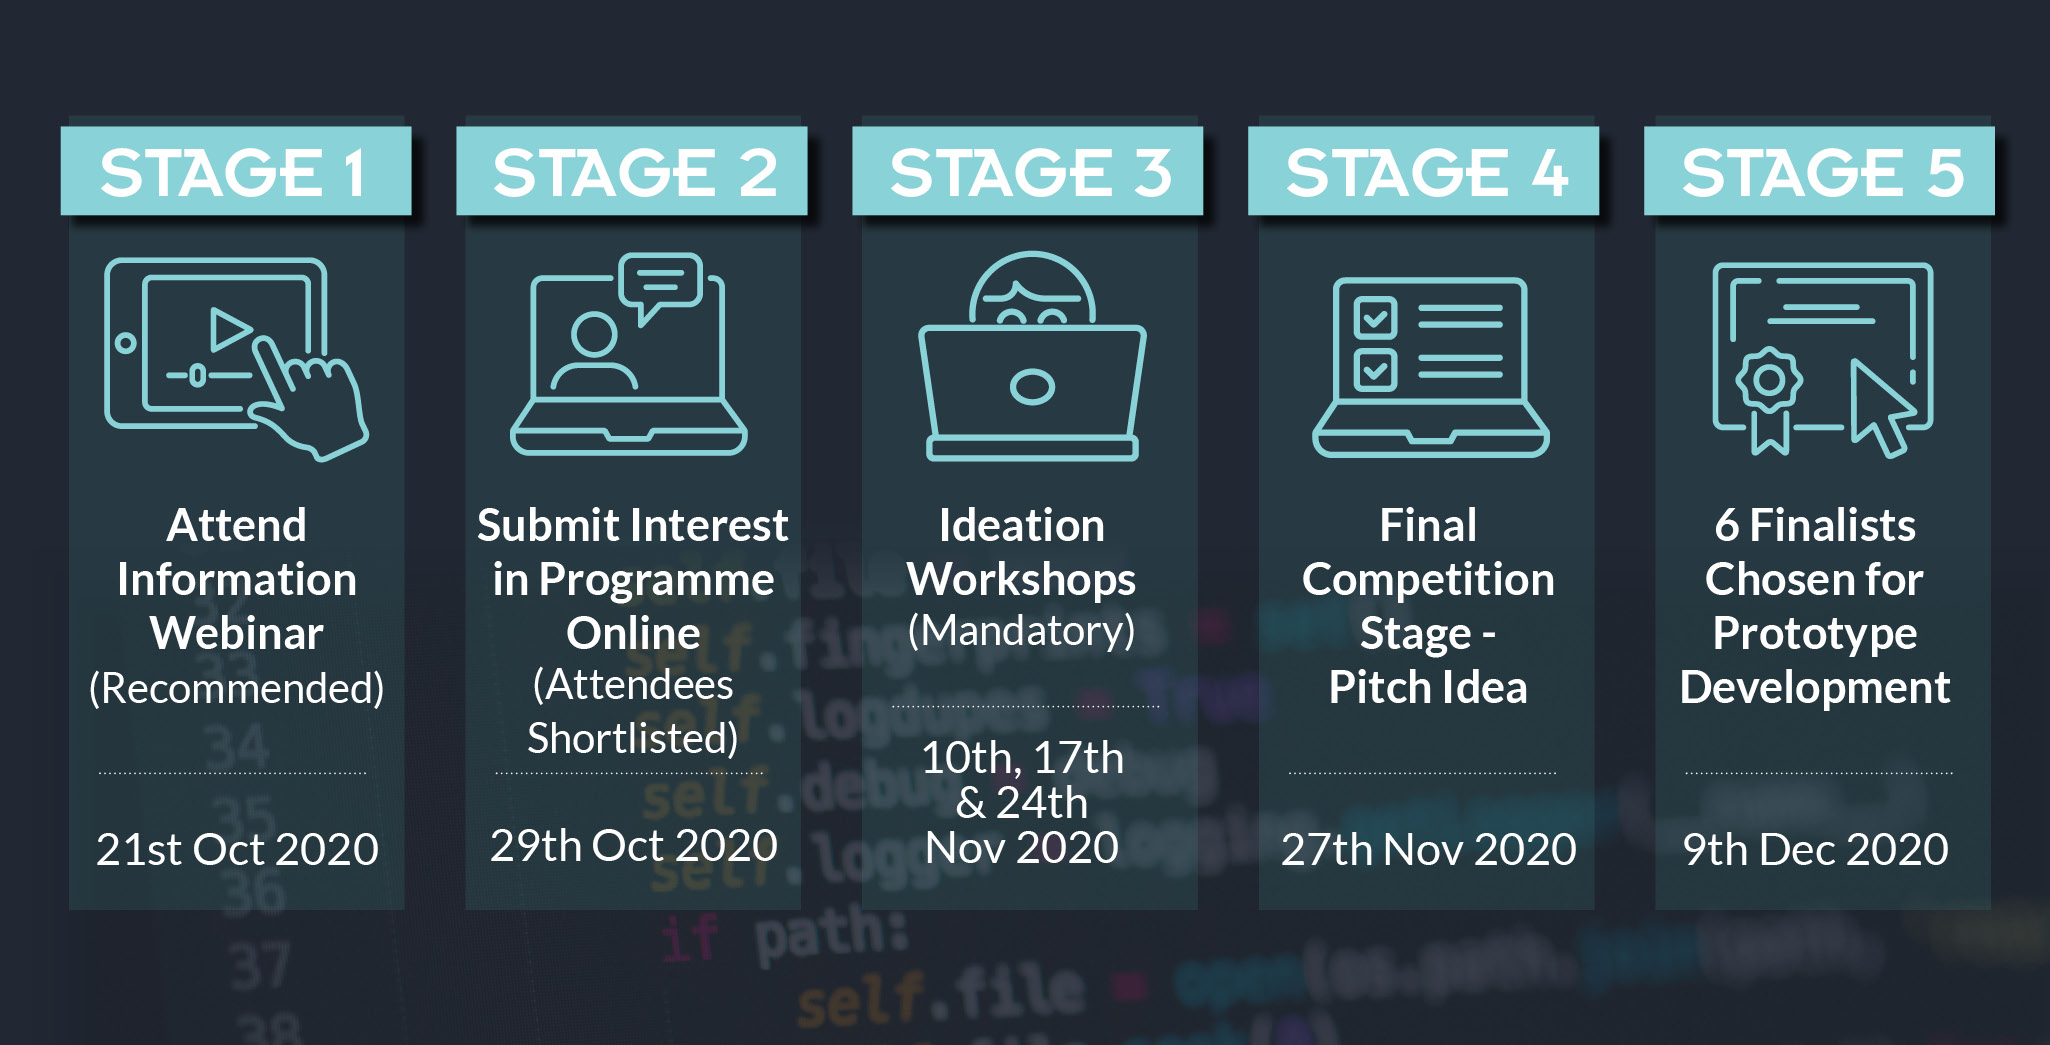 Tech Disrupt Stages Image (Virtual)